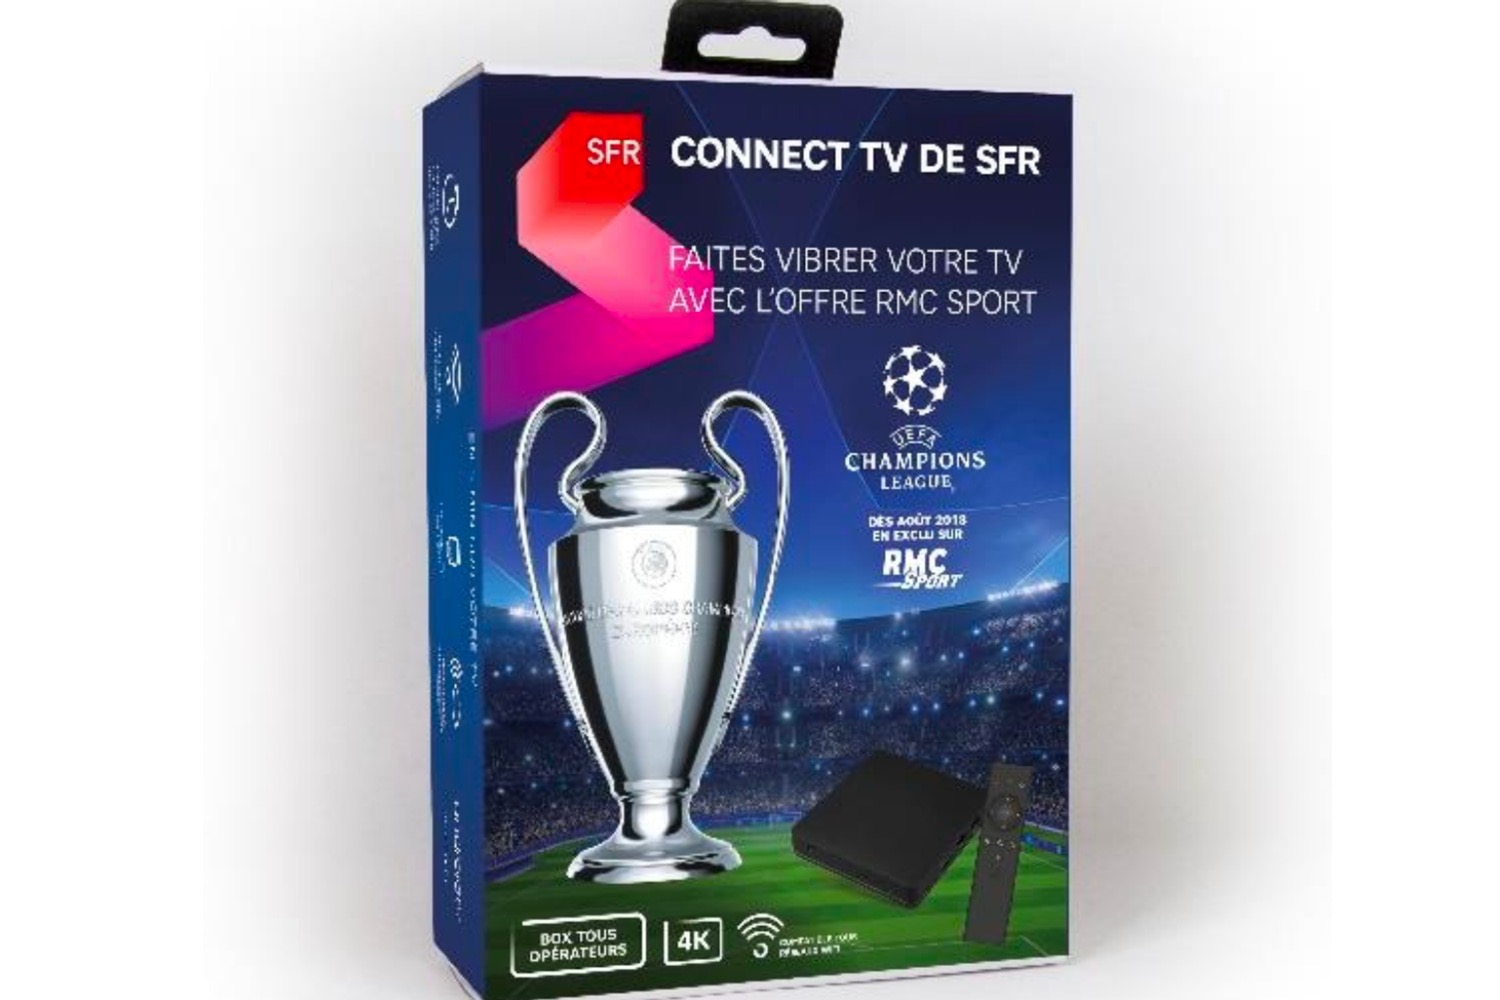 Connect TV